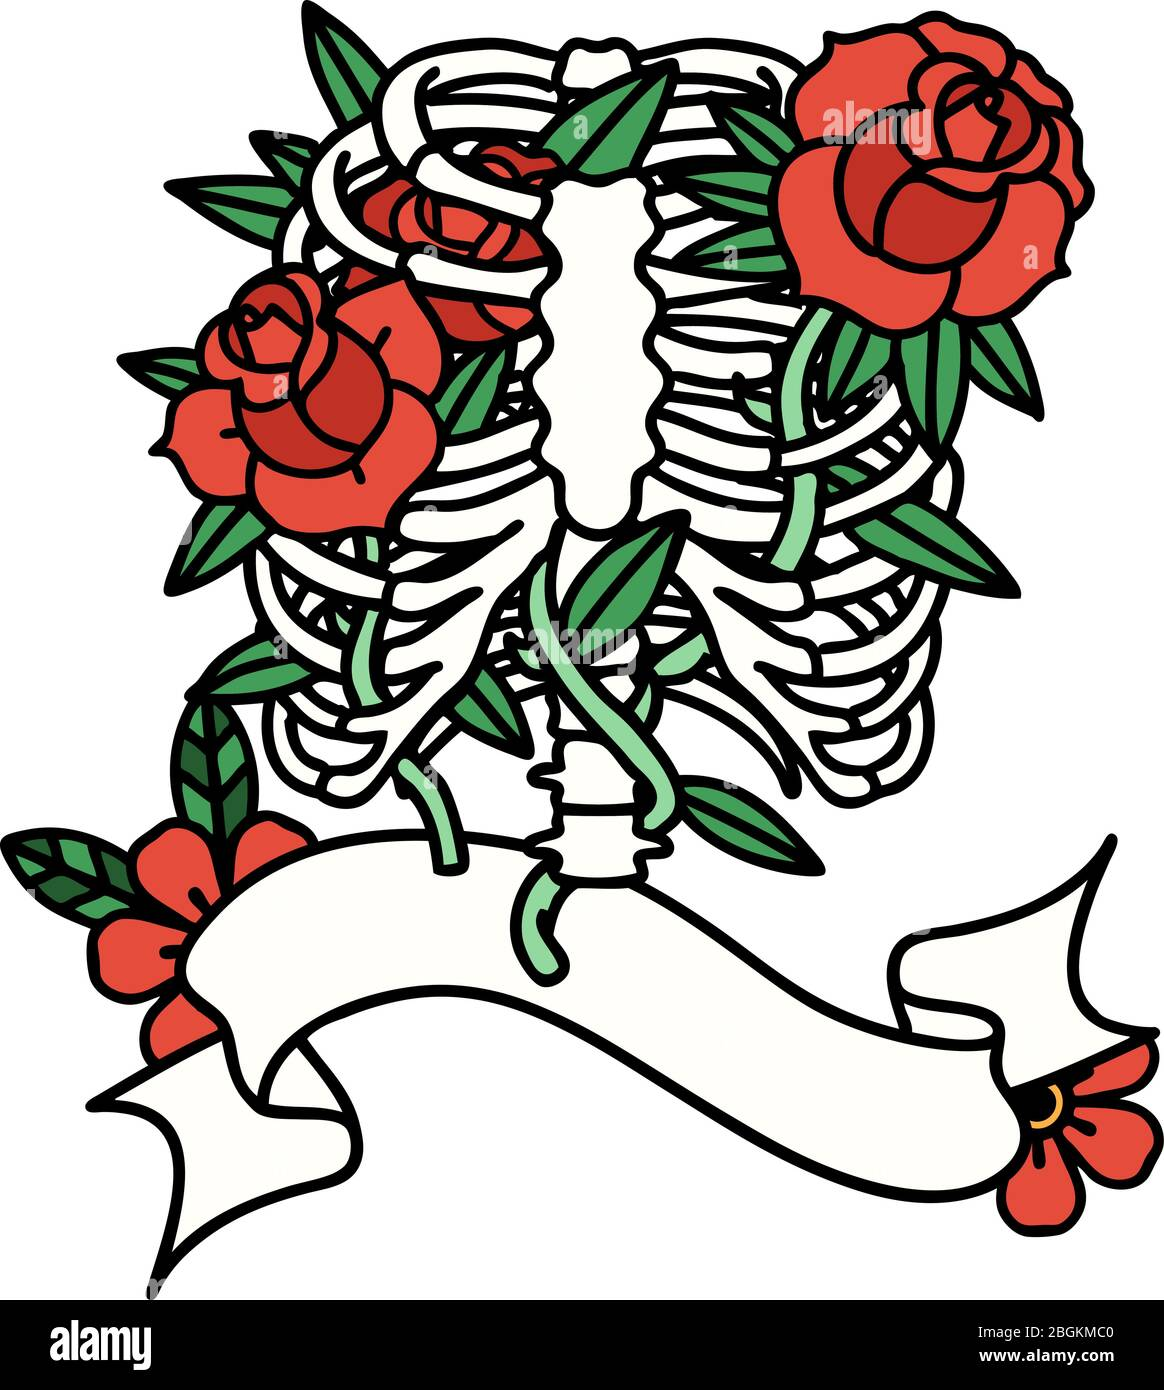 Traditional Tattoo With Banner Of A Rib Cage And Flowers Stock Vector Image Art Alamy